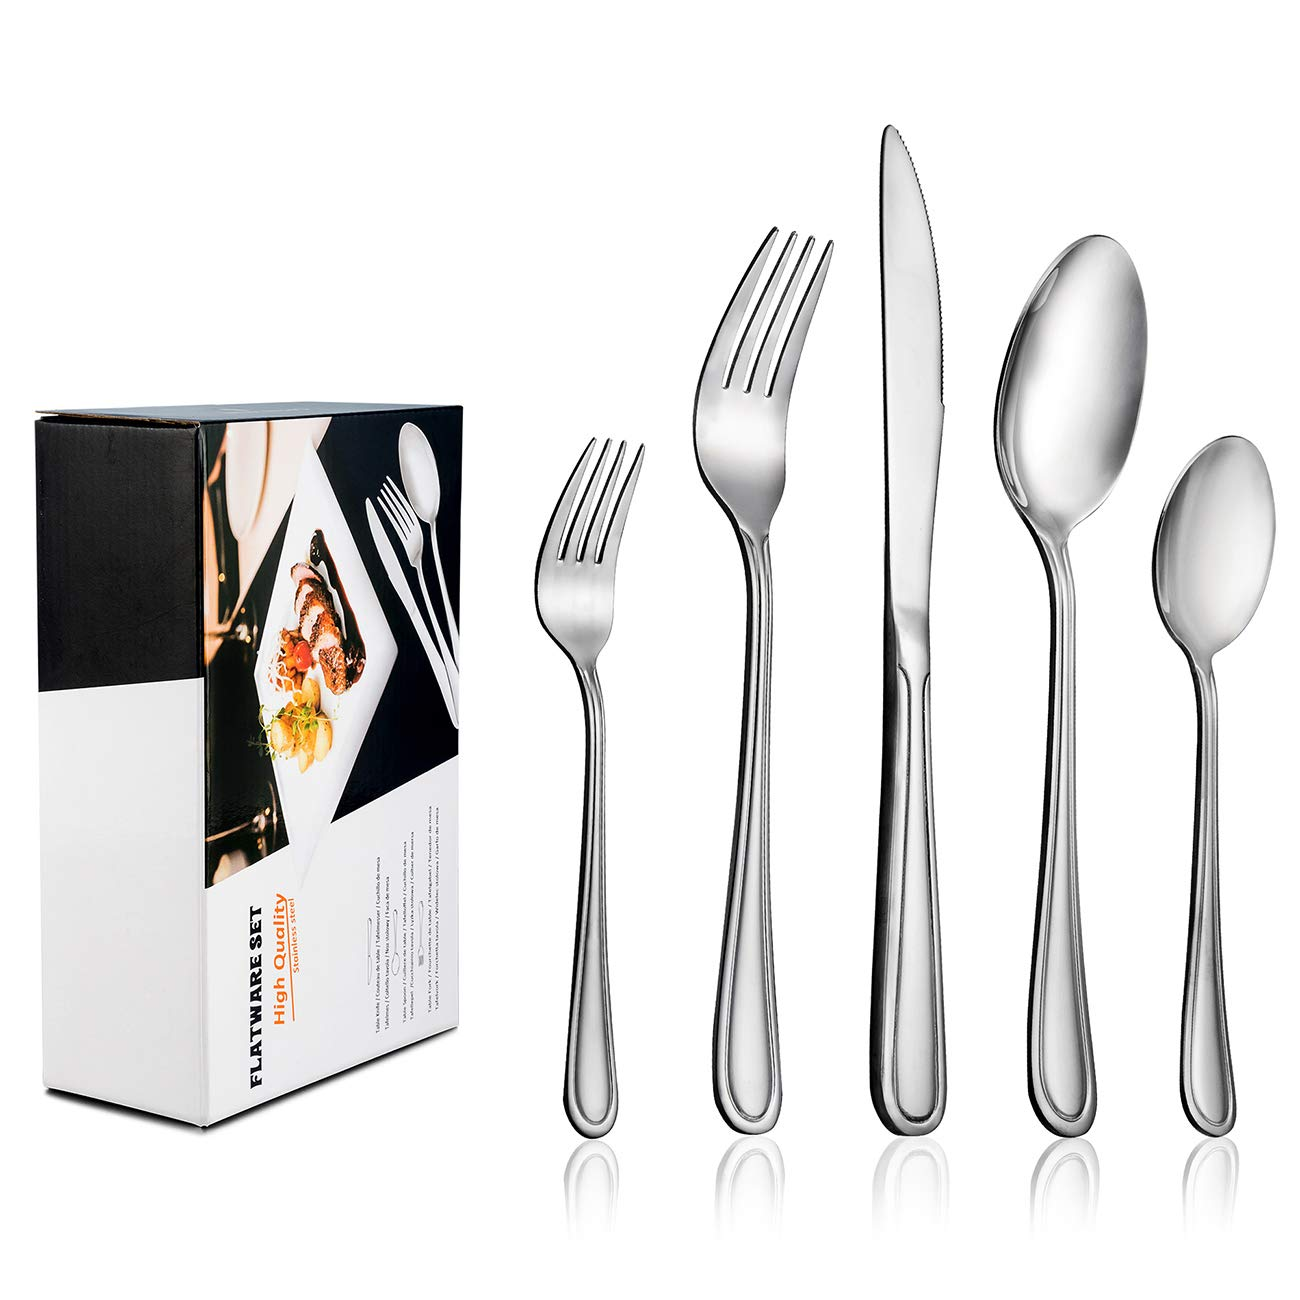 60-Piece Flatware Set for 12, LIANYU Stainless Steel Silverware Cutlery Set, Tableware Eating Utensils for Large Family Party Restaurant Hotel Wedding, Mirror Finish, Dishwasher Safe